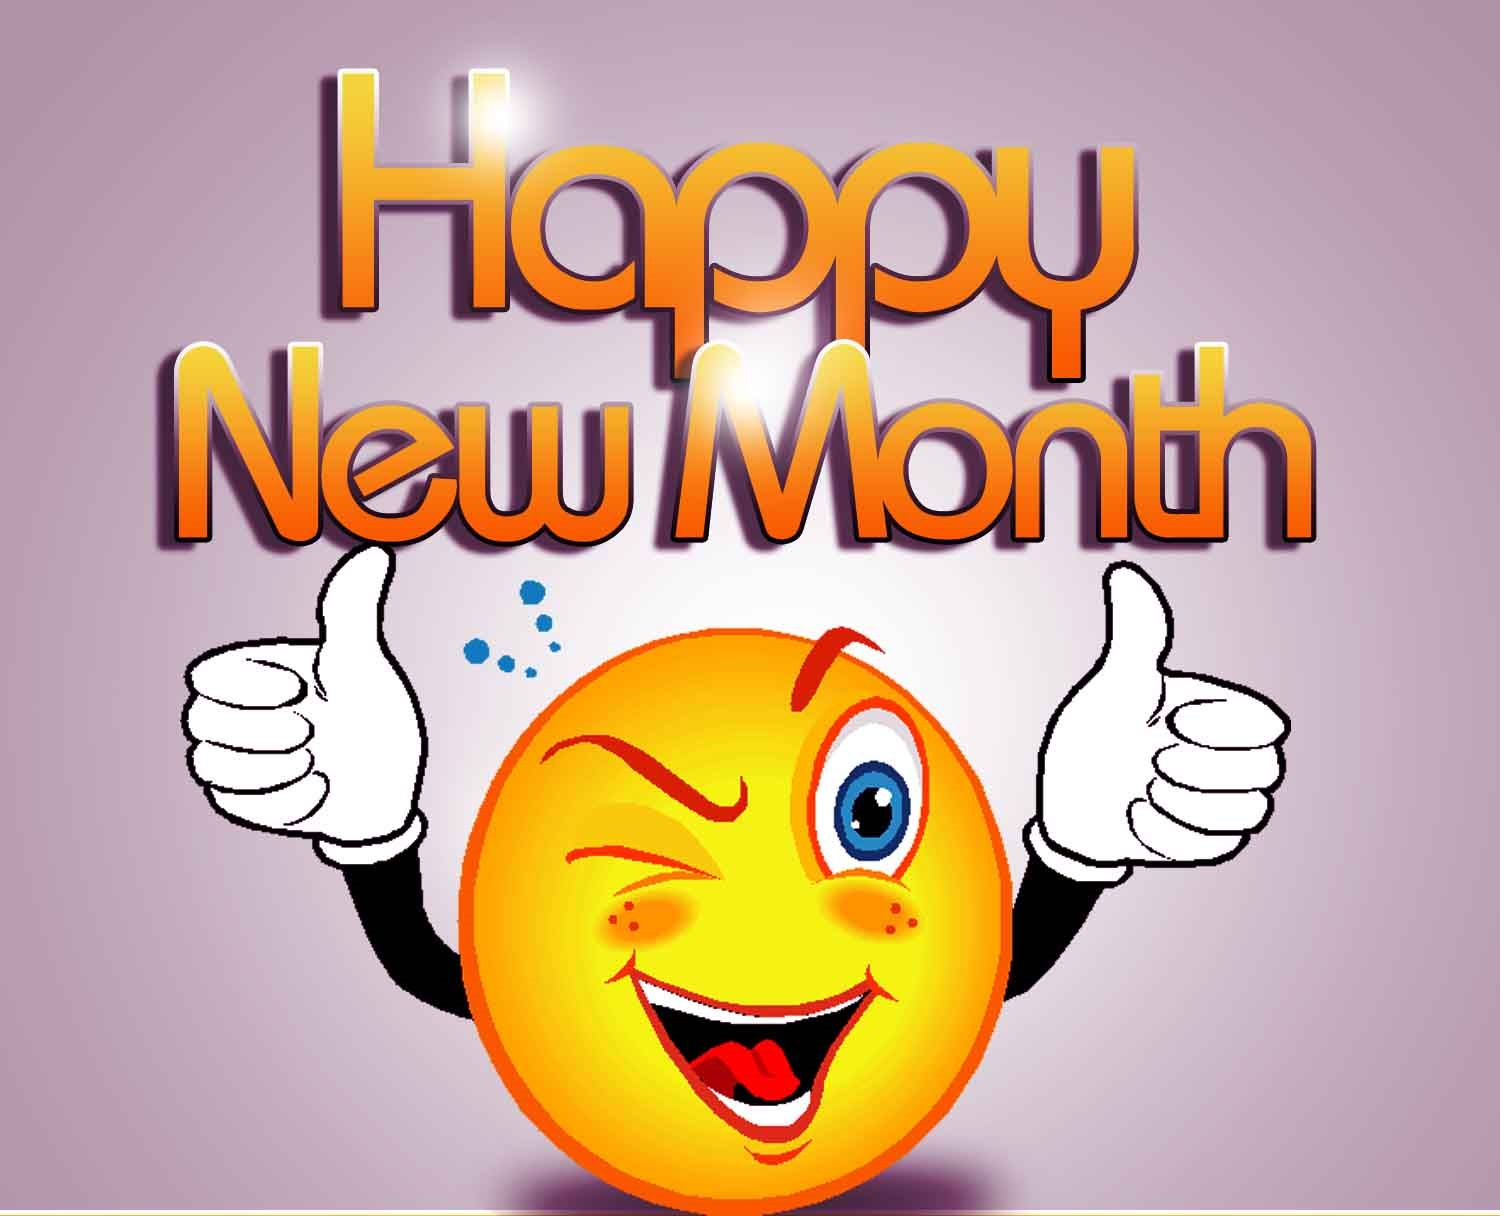 Top 50 happy new month sms and wishes